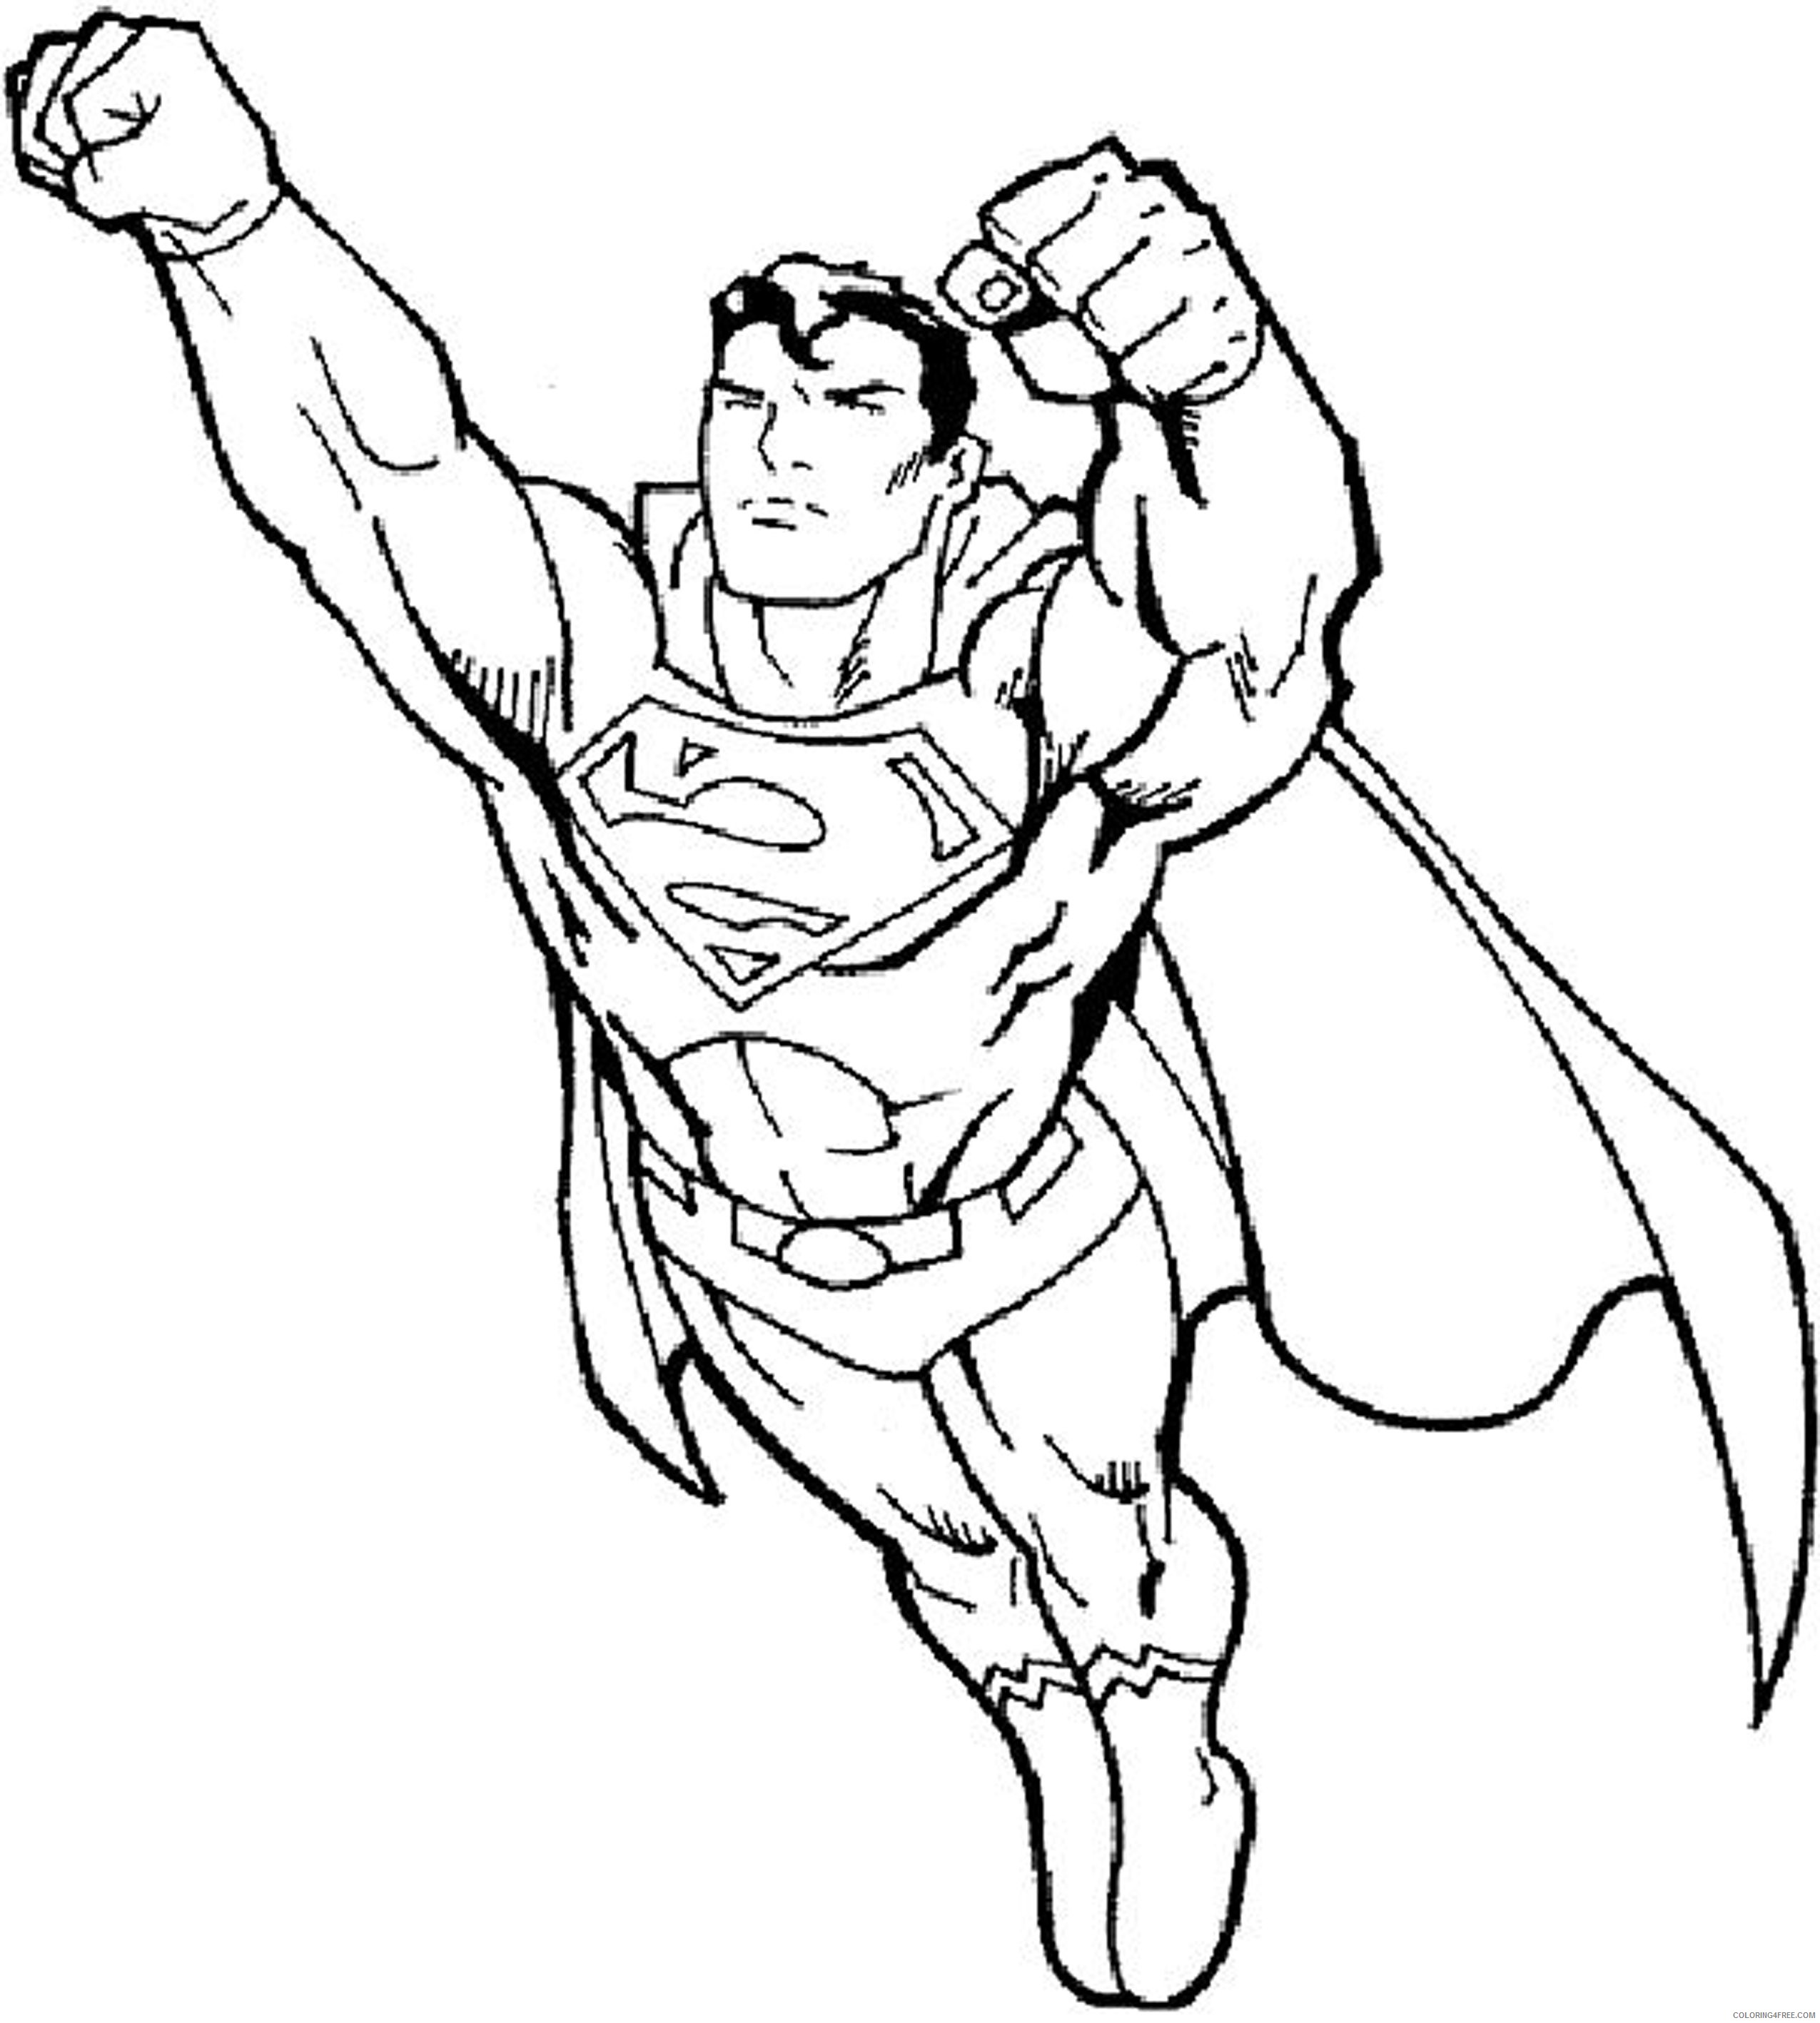 superman flying coloring pages Coloring4free